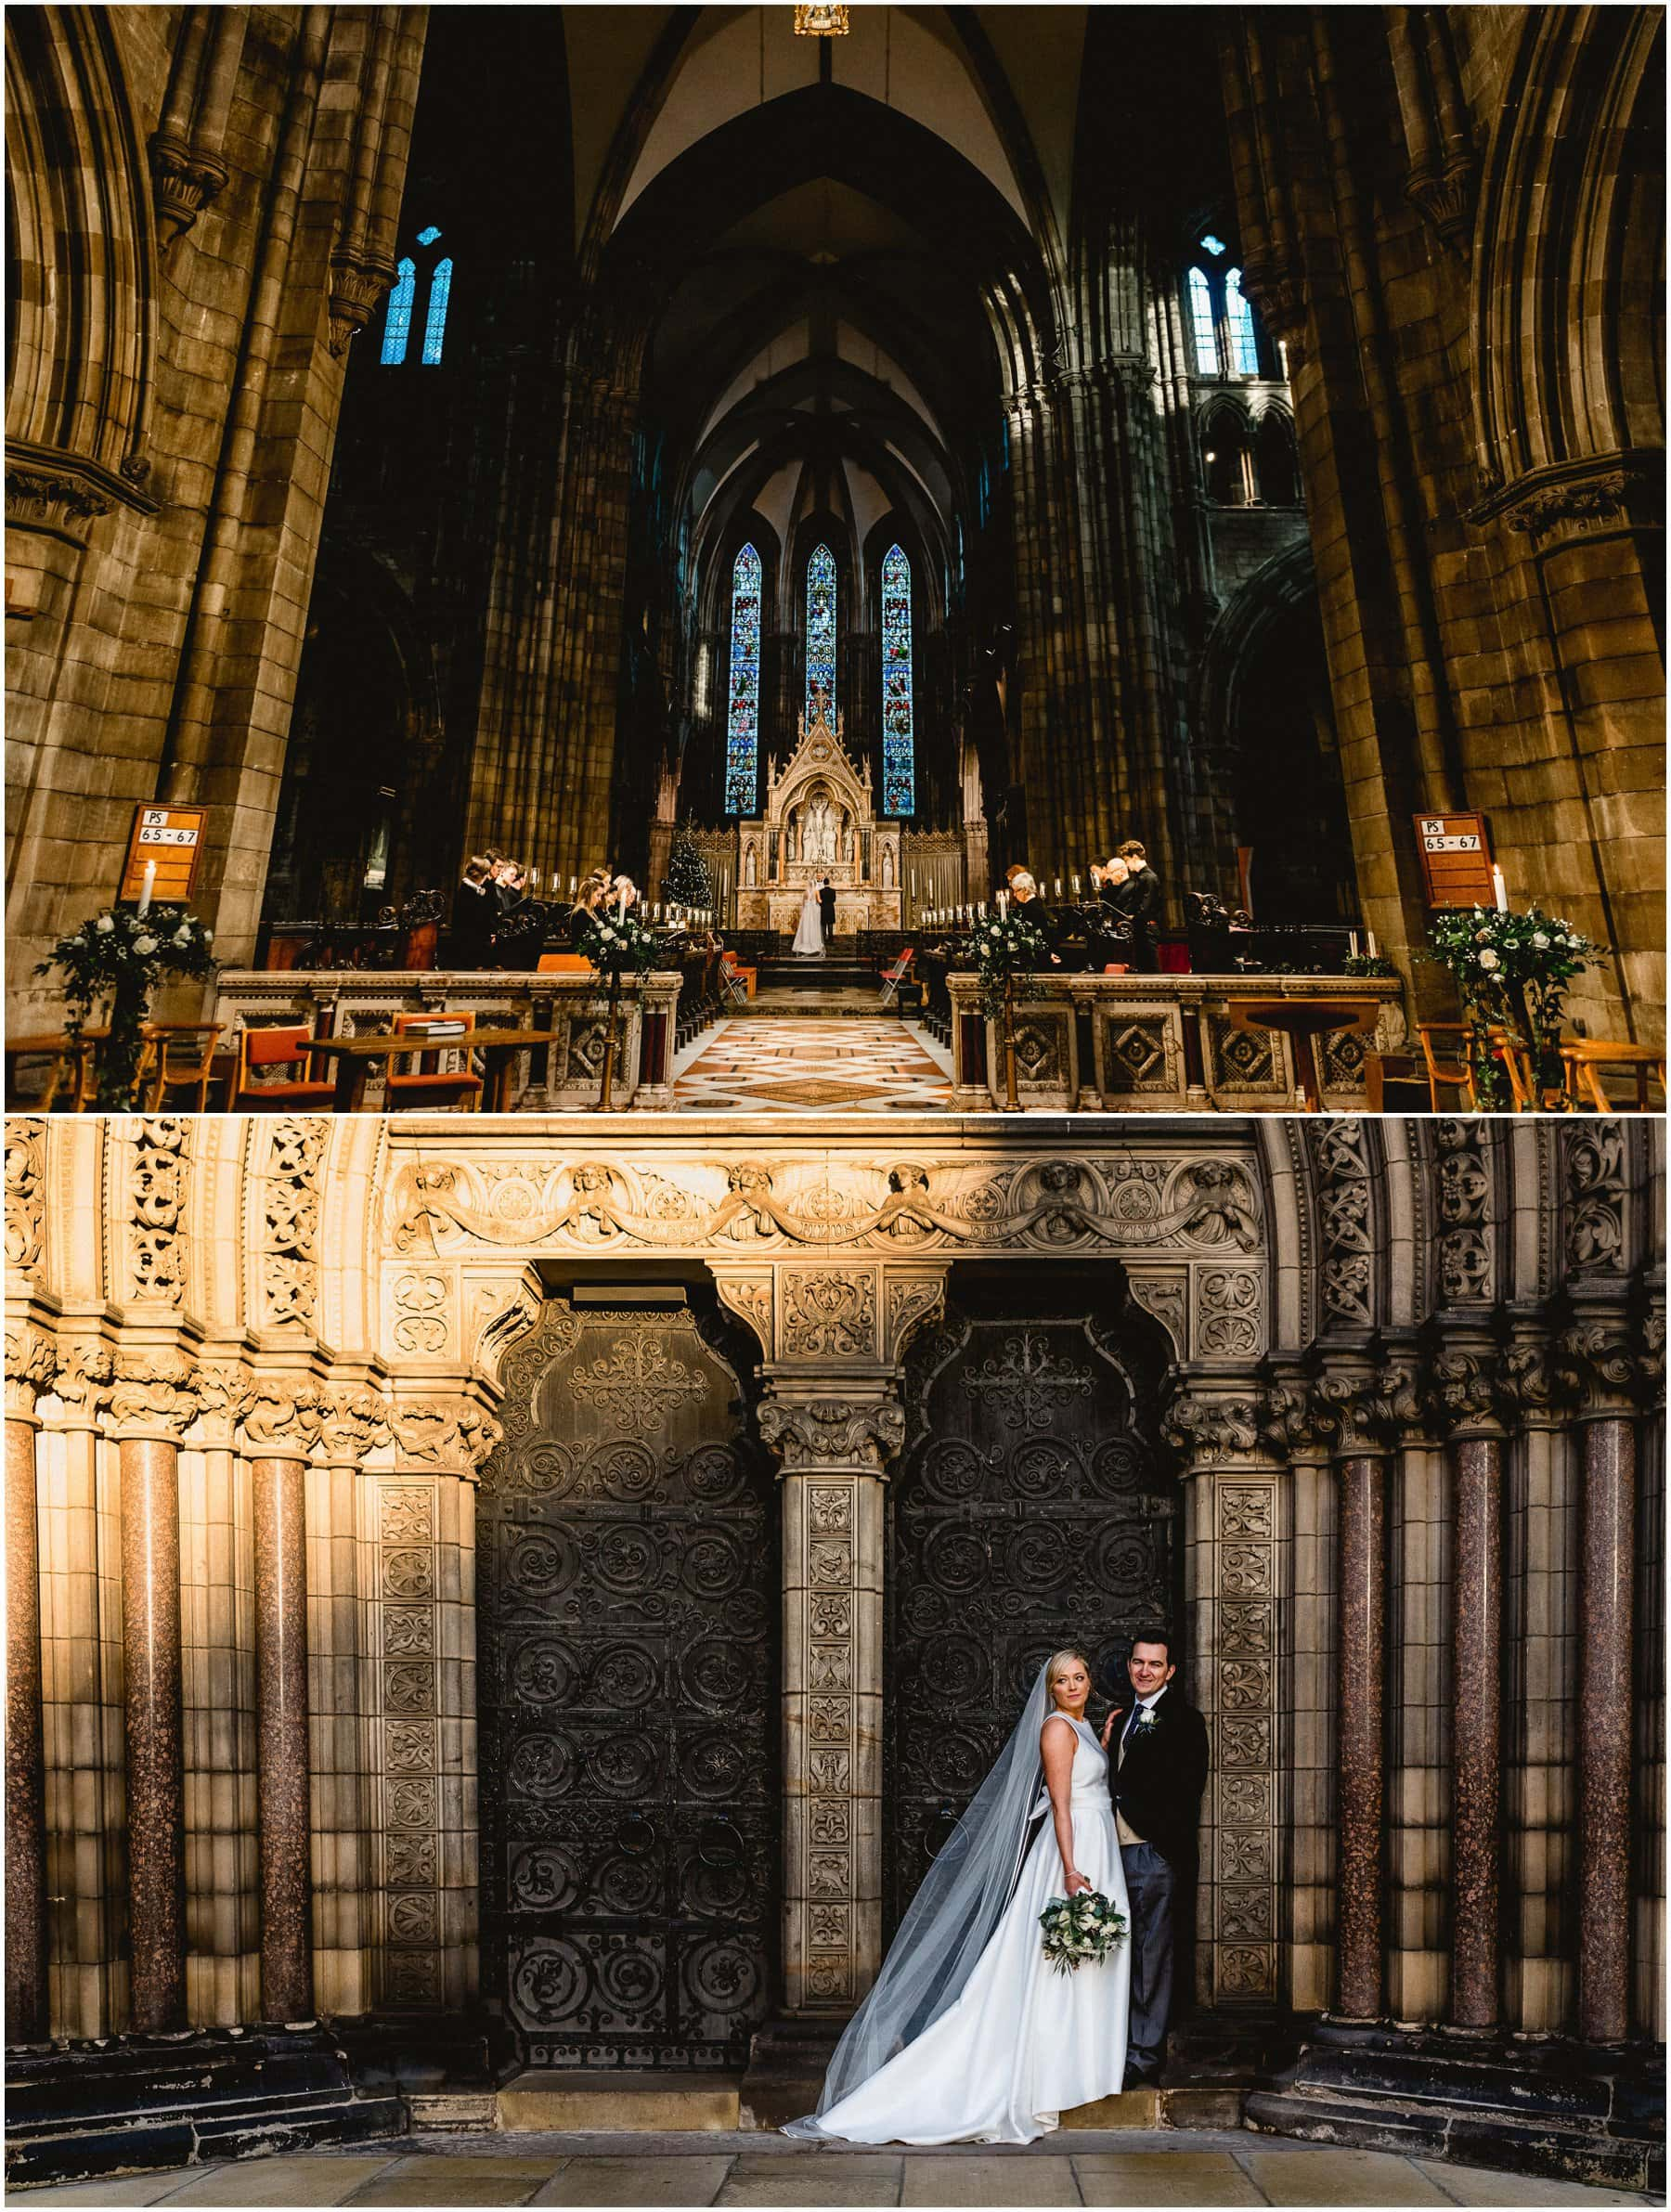 St Marys Cathedral Palmerston Place wedding ceremony and bridal portrait